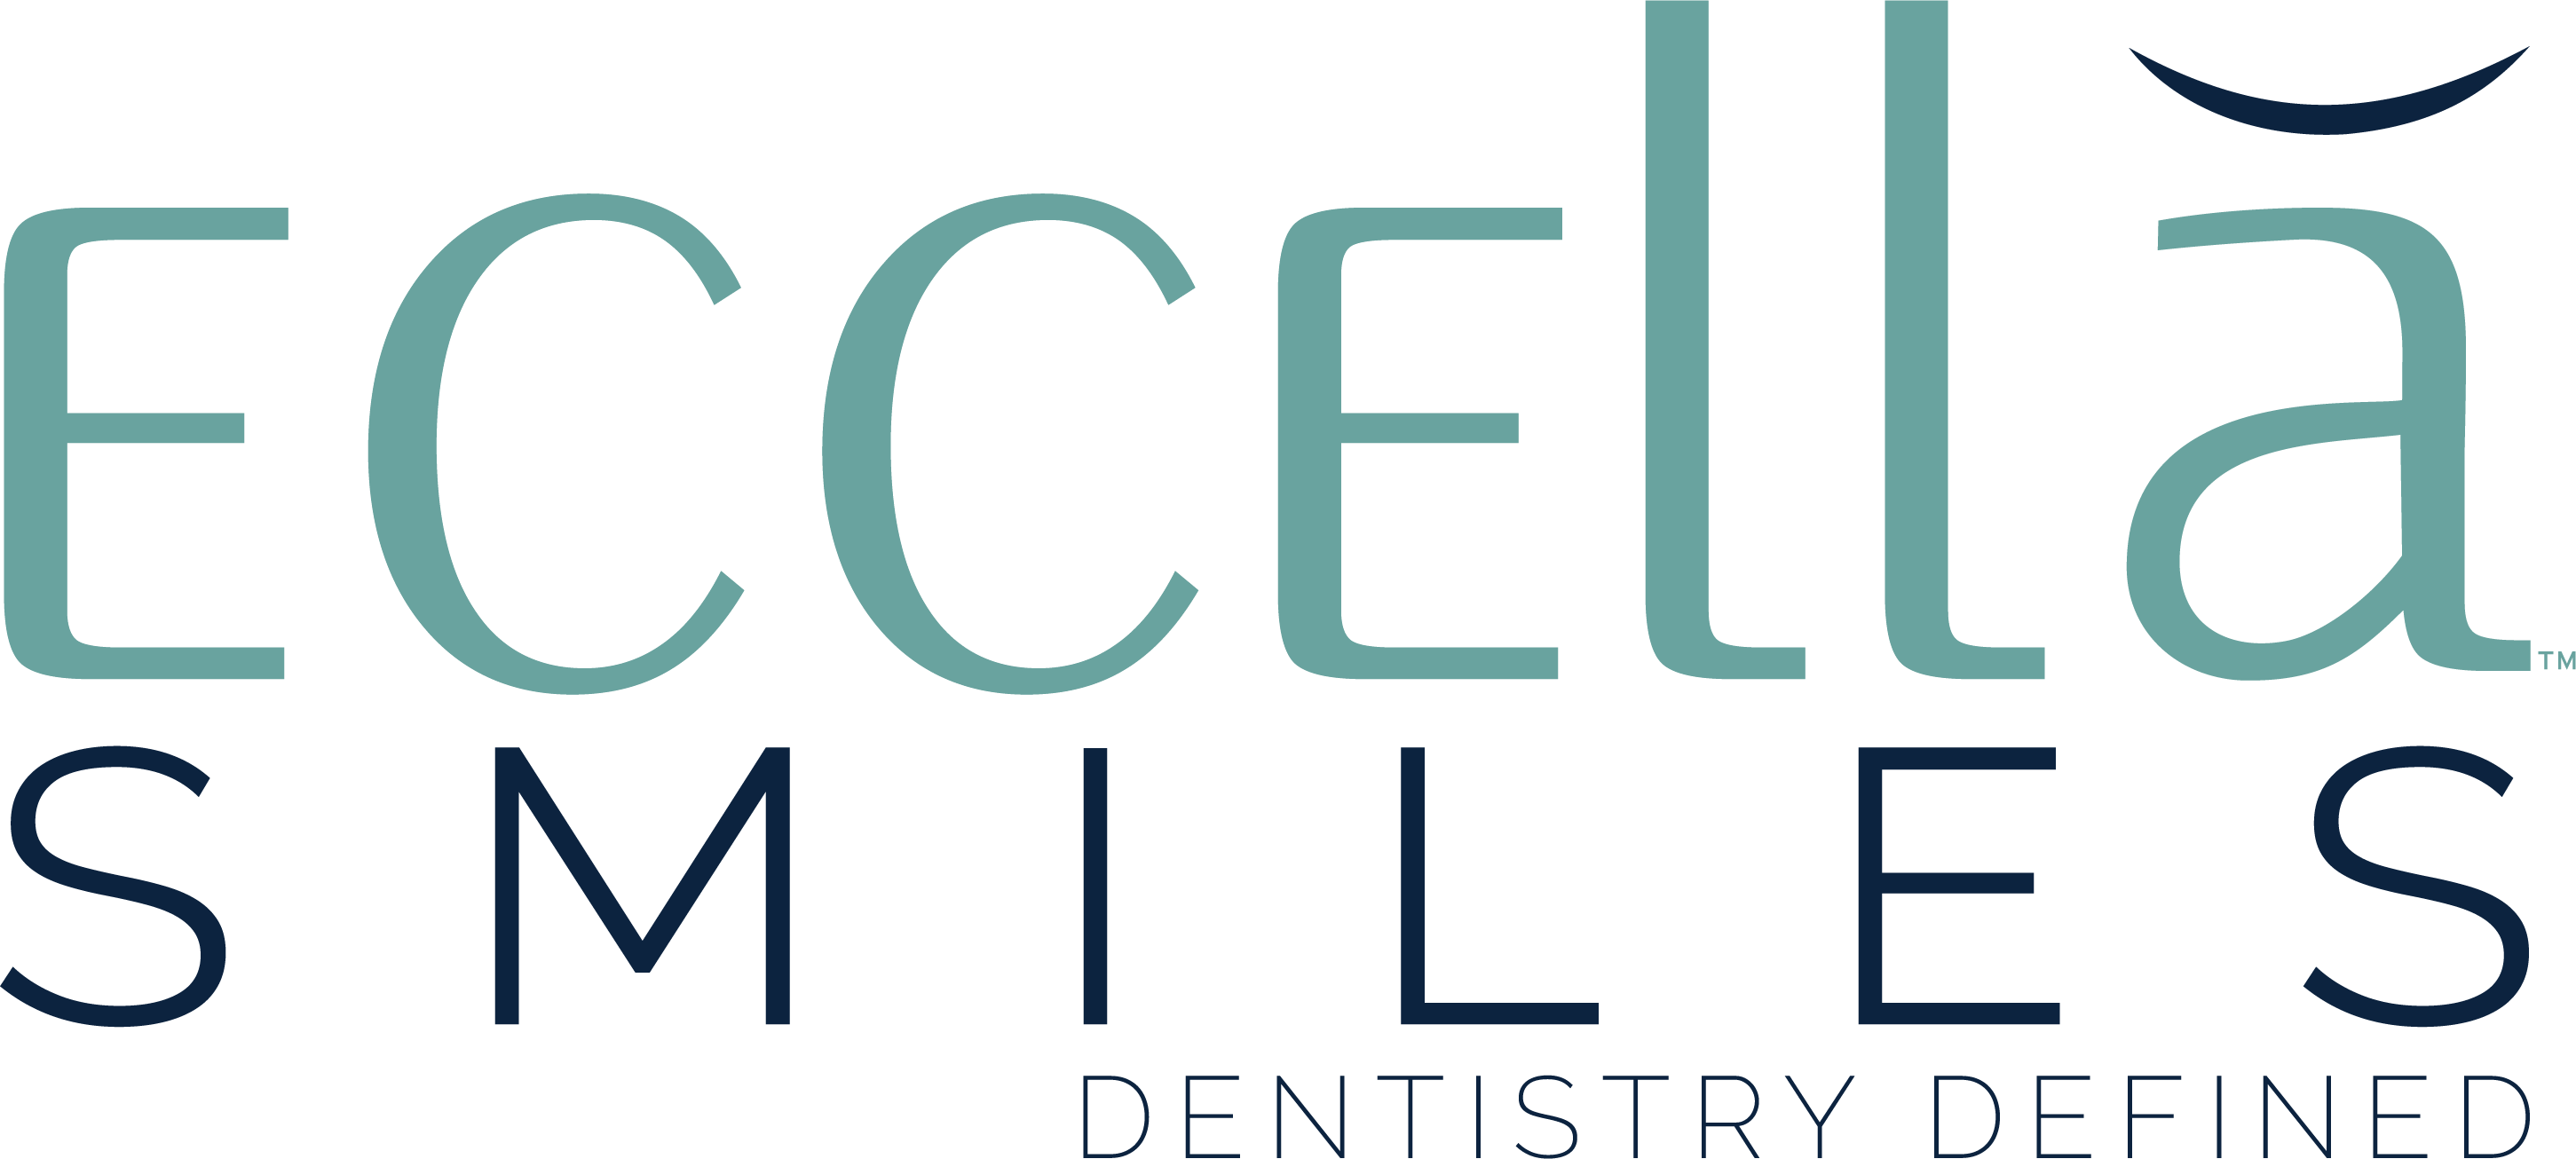 Eccella Smiles is a Leading Dental Practice in Jacksonville Beach, FL